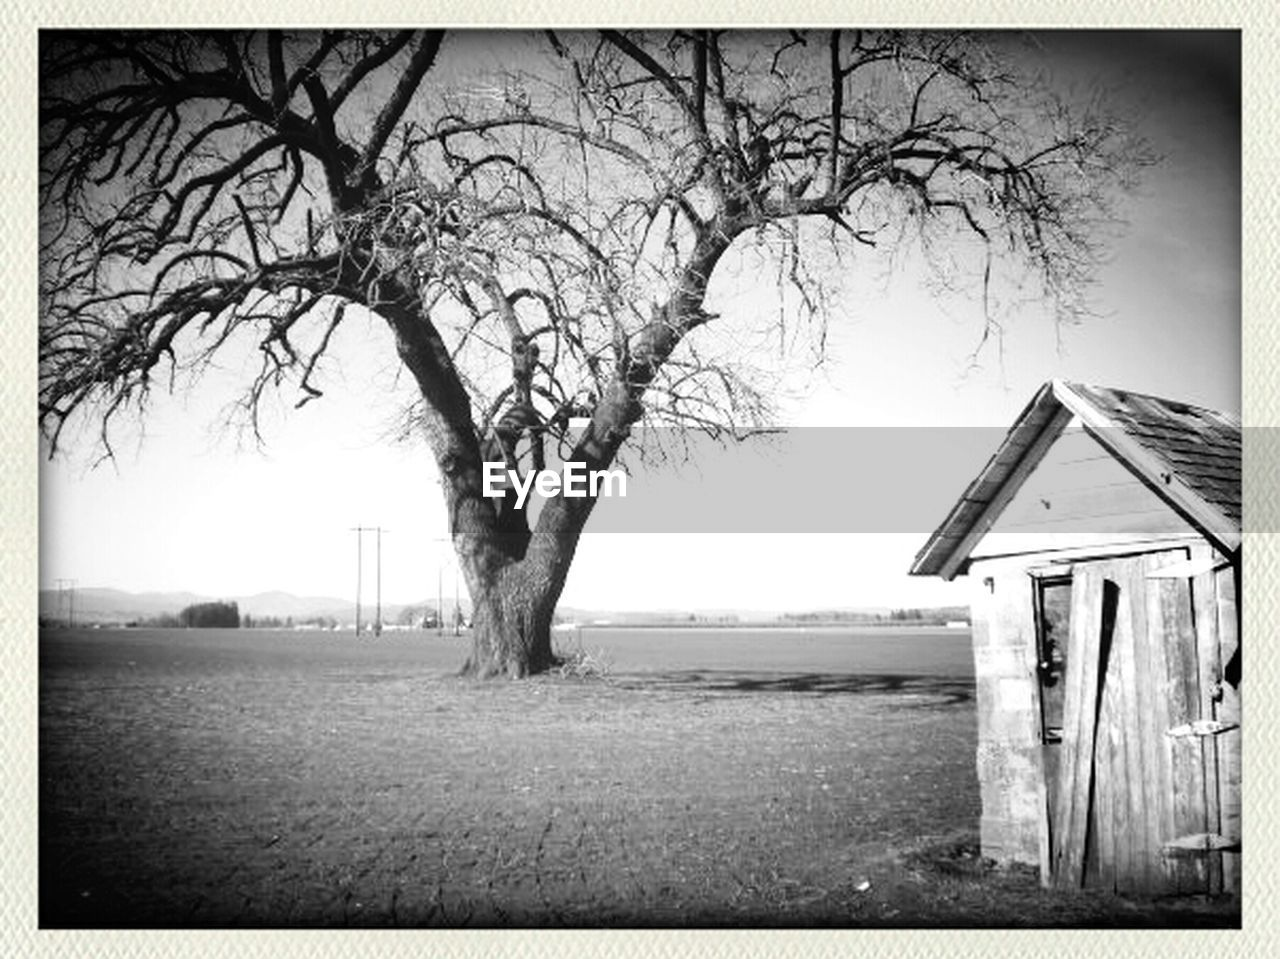 bare tree, tree, house, day, tranquility, abandoned, outdoors, no people, branch, field, built structure, tree trunk, landscape, grass, architecture, building exterior, scenics, sky, nature